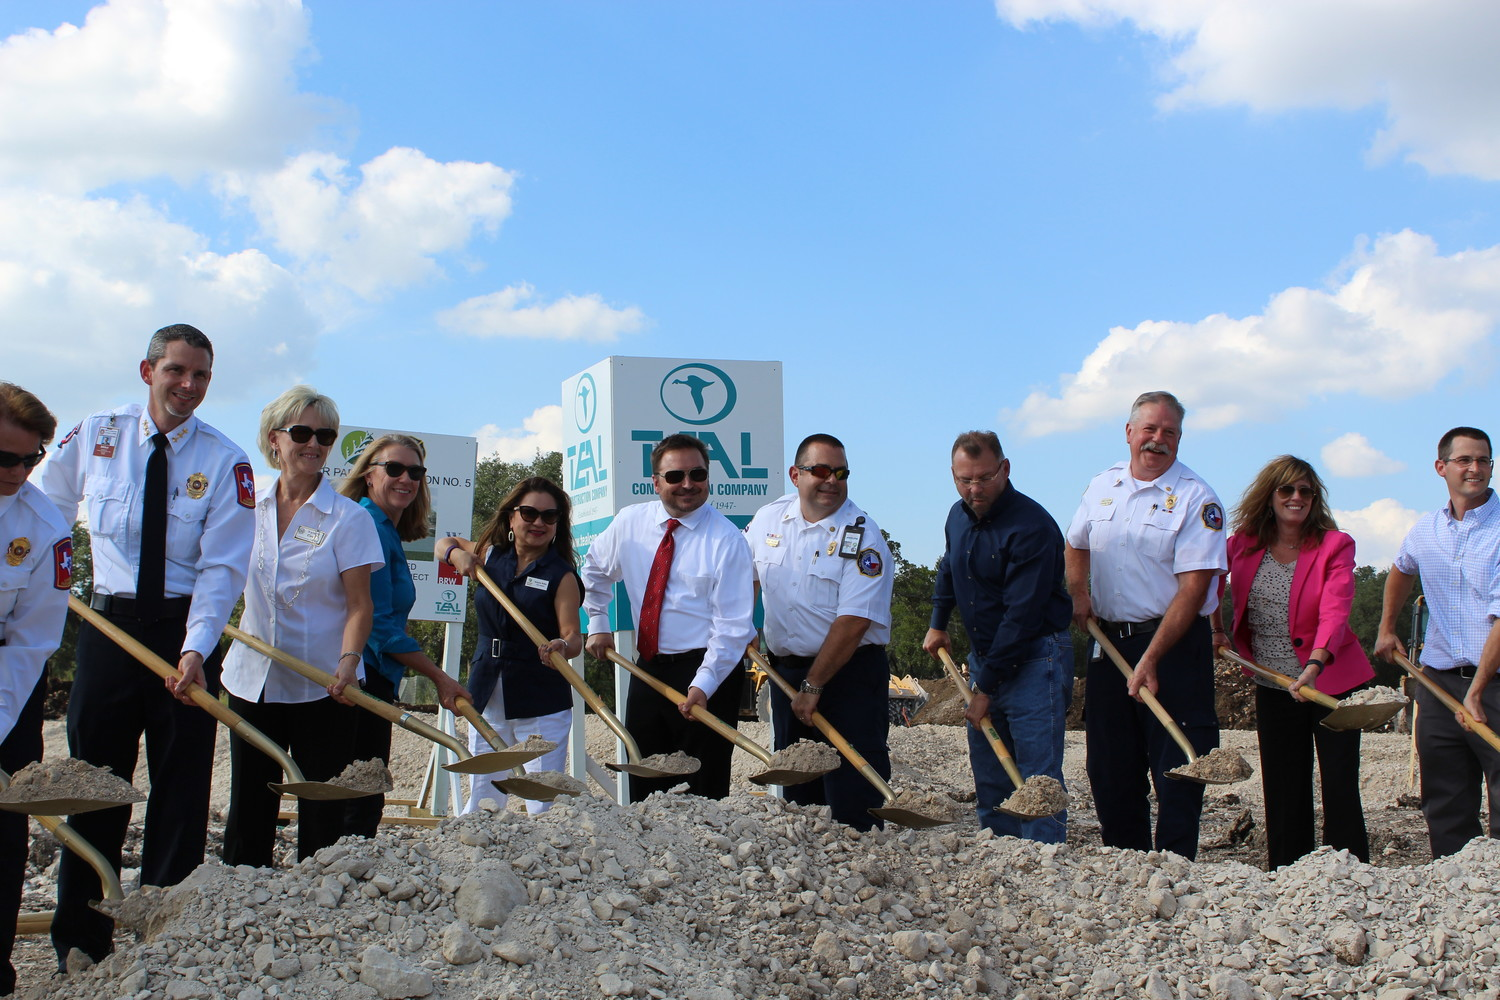 Cedar Park and Williamson County officials break ground at the construction site of Fire Station No. 5 at 1501 Cottonwood Creek Trail, Monday, Oct. 2. The station will serve the growing north and northeast areas of Cedar Park and will house both CPFD and WilCo EMS.